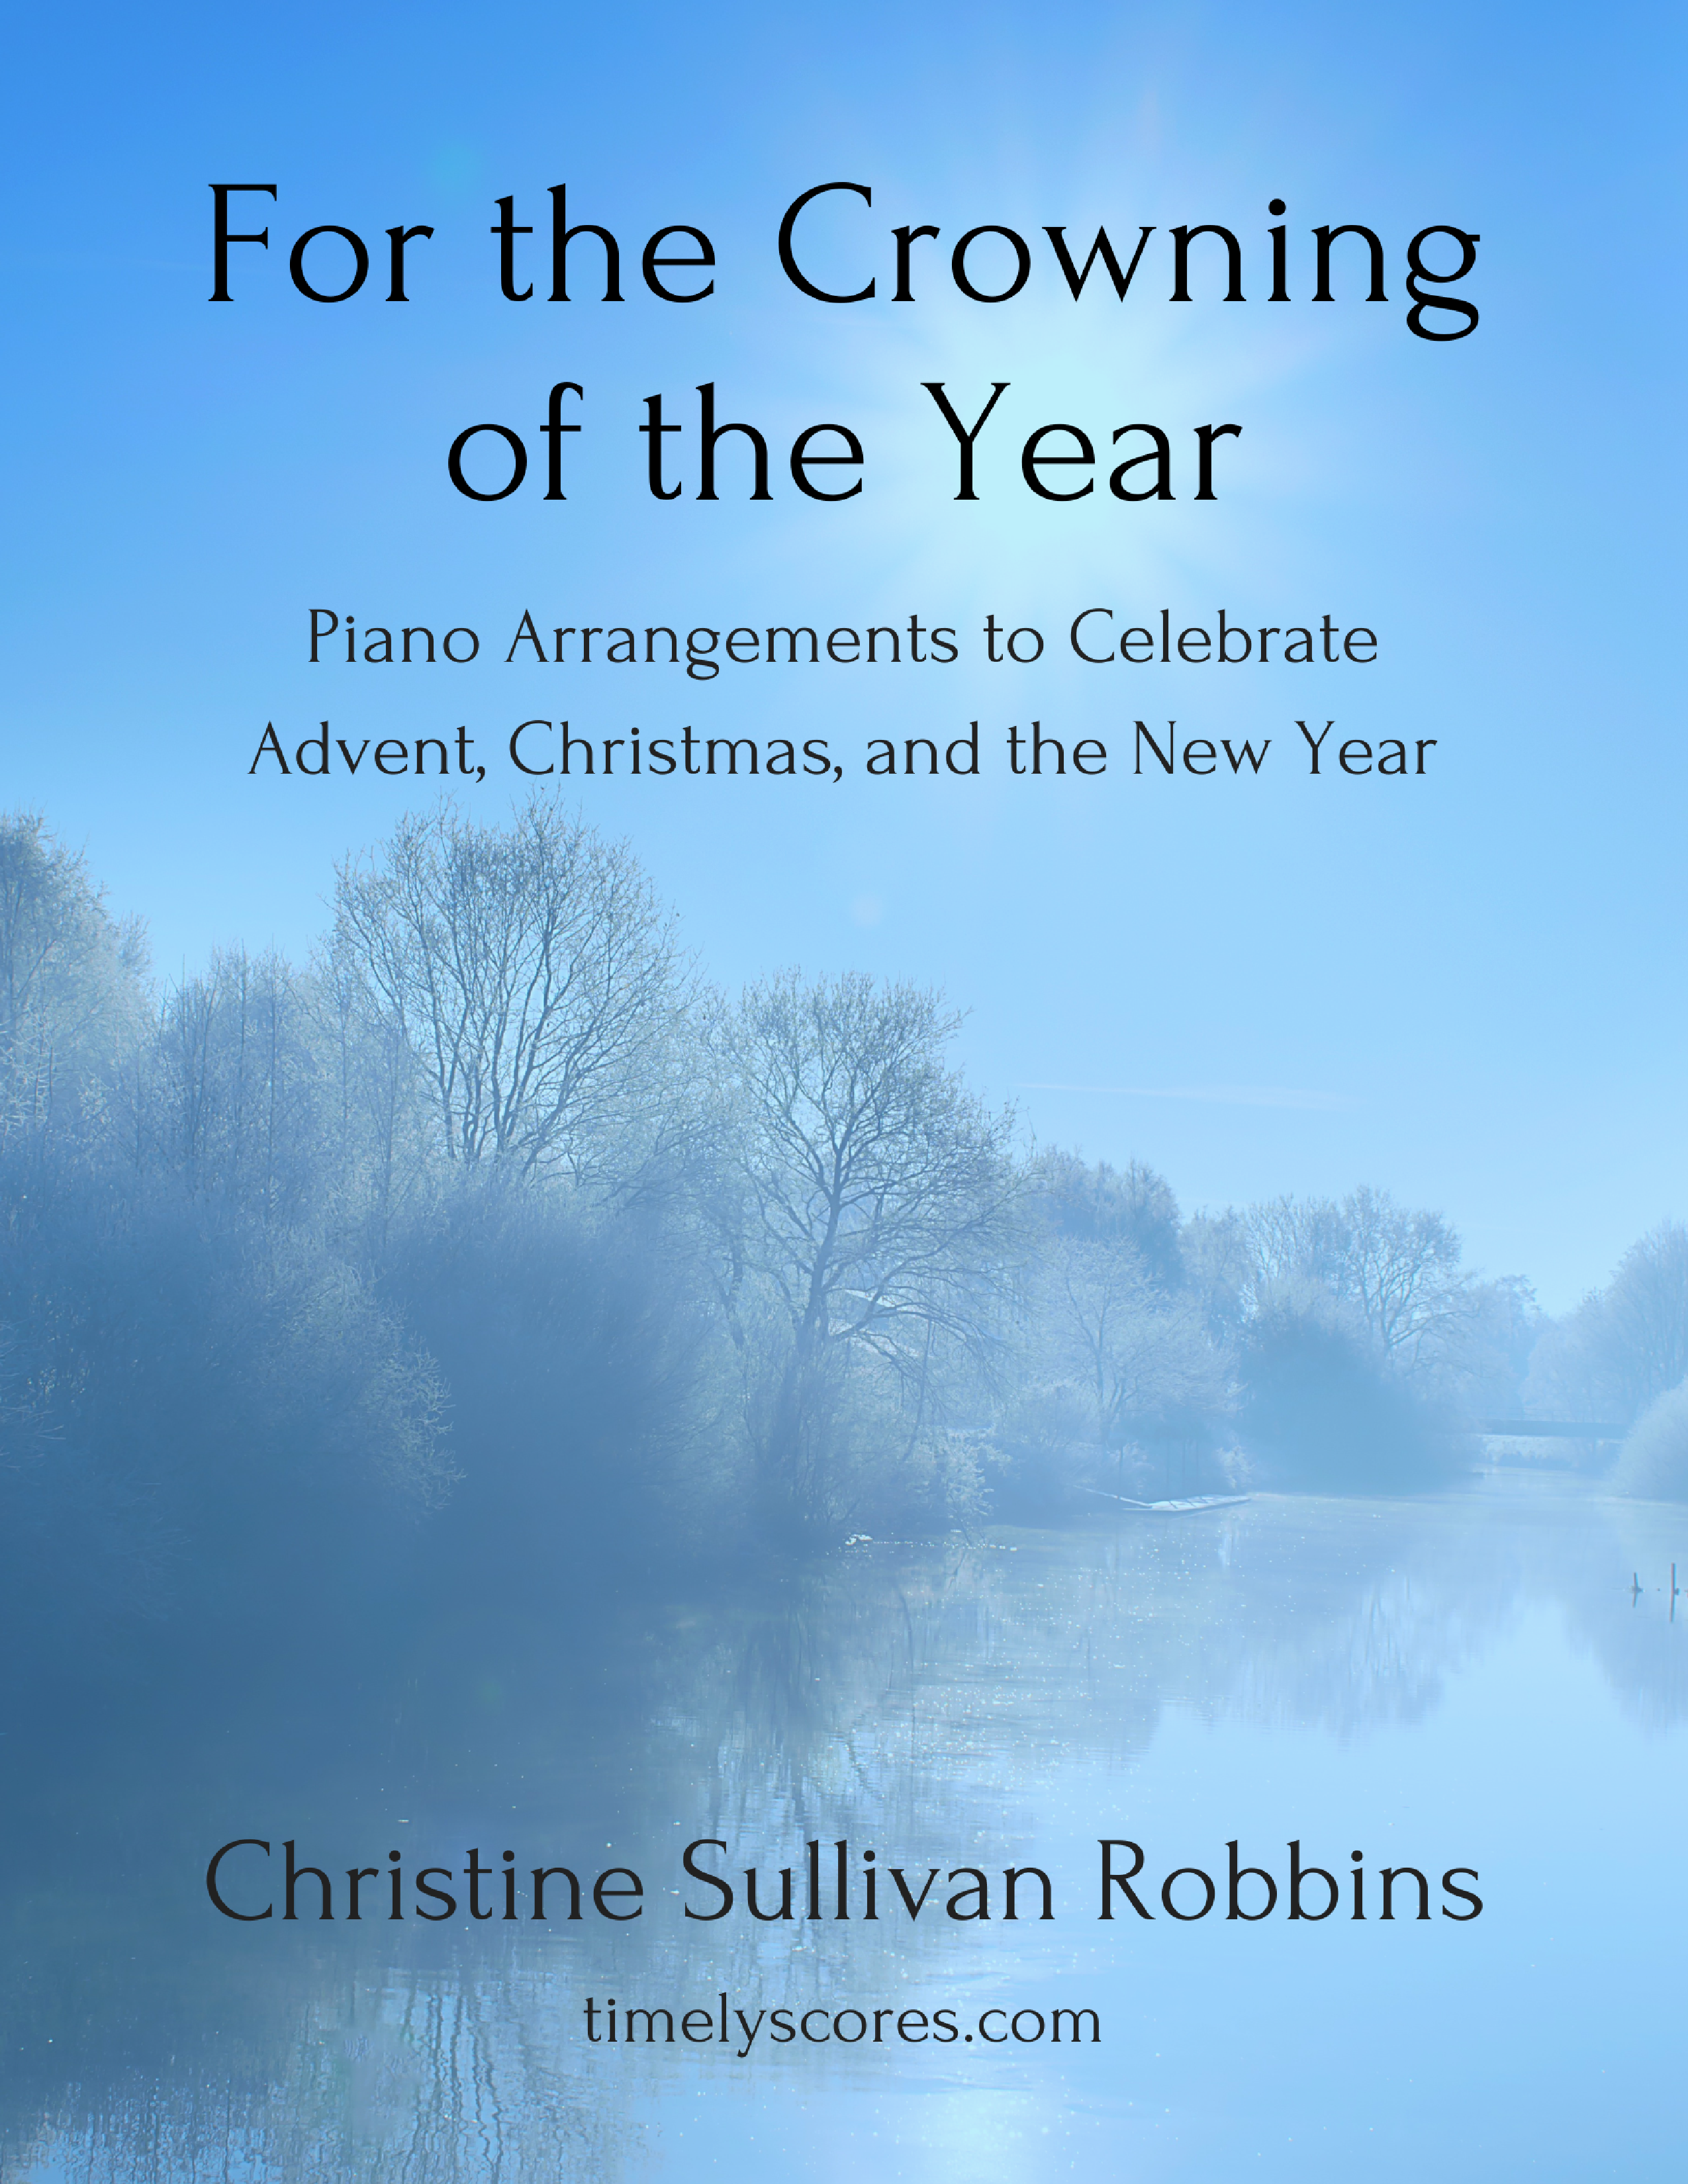 Cover image for the sheet music set For the Crowning of the Year: Piano Arrangements to Celebrate Advent, Christmas, and the New Year